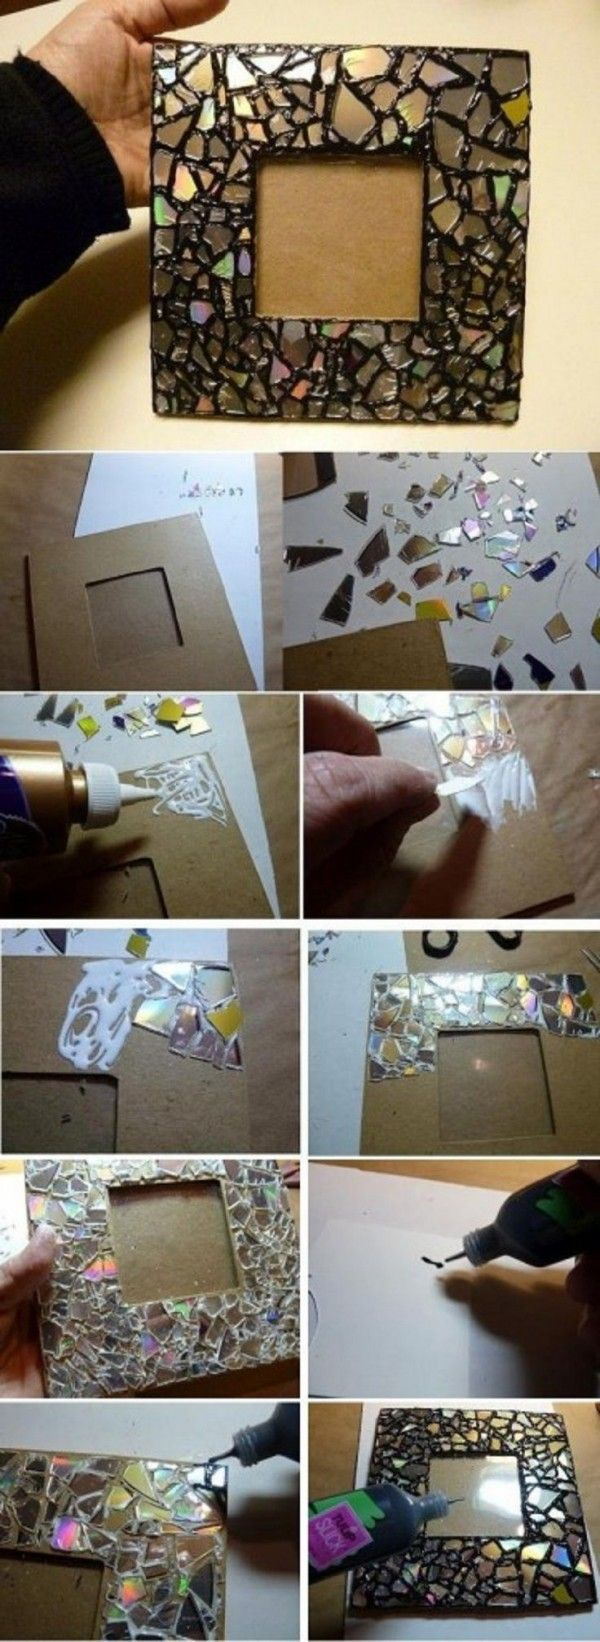 Check out the tutorial: Mirror shard frame #DIY #crafts #homedecor